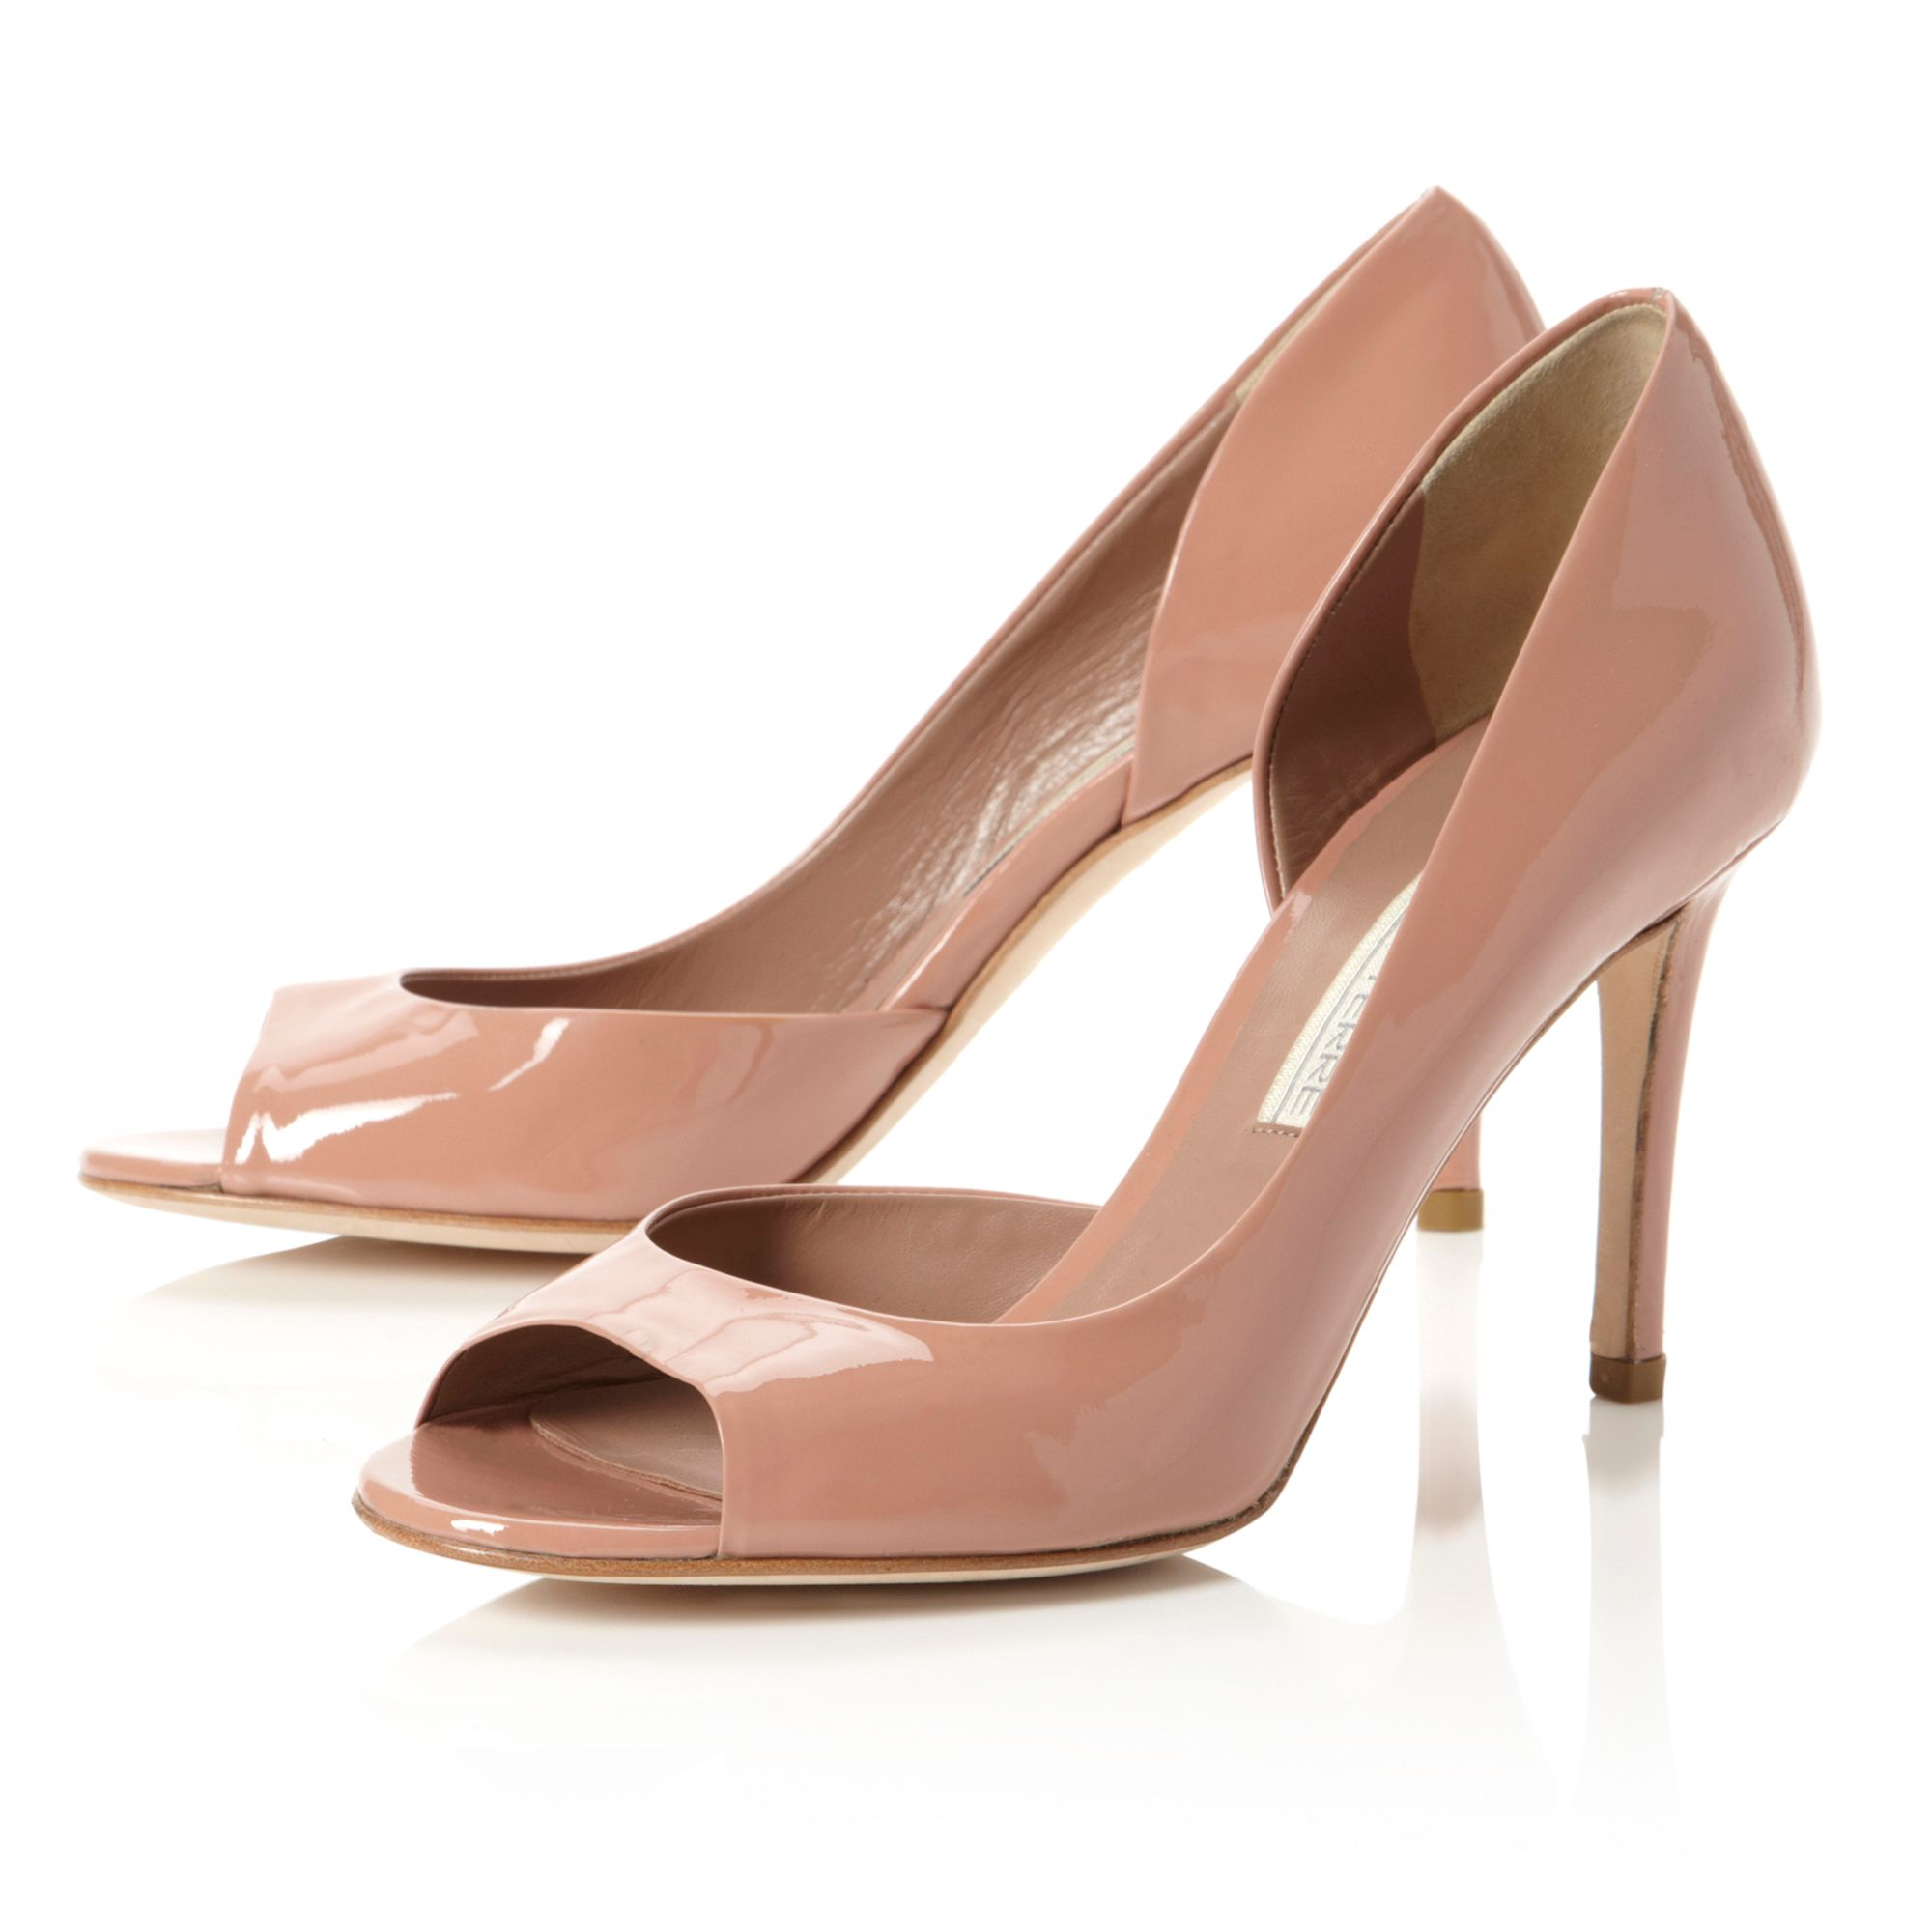 Carland Peep Toe Court Shoes